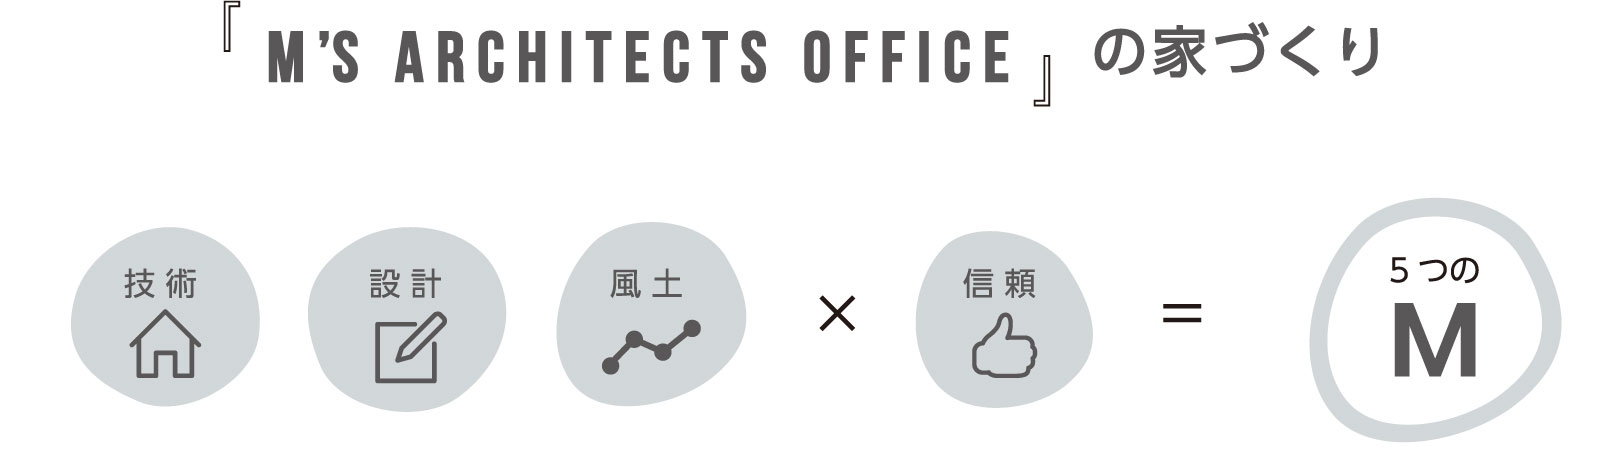 『M'S ARCHITECTS OFFICE の家づくり